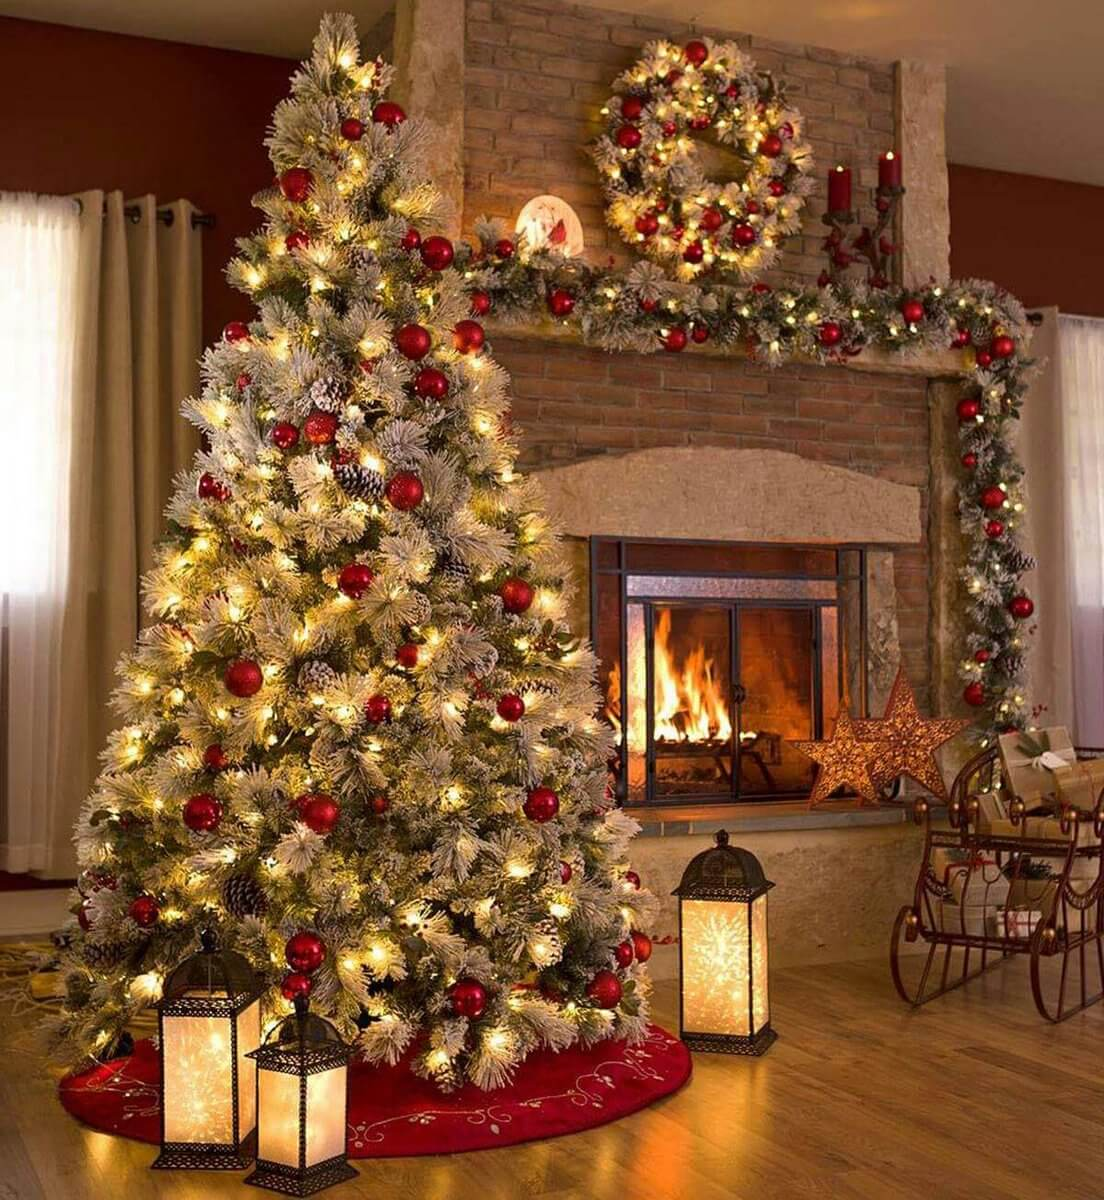 red berry balls night lamps and fireplace - How To Decorate A Small Living Room For Christmas